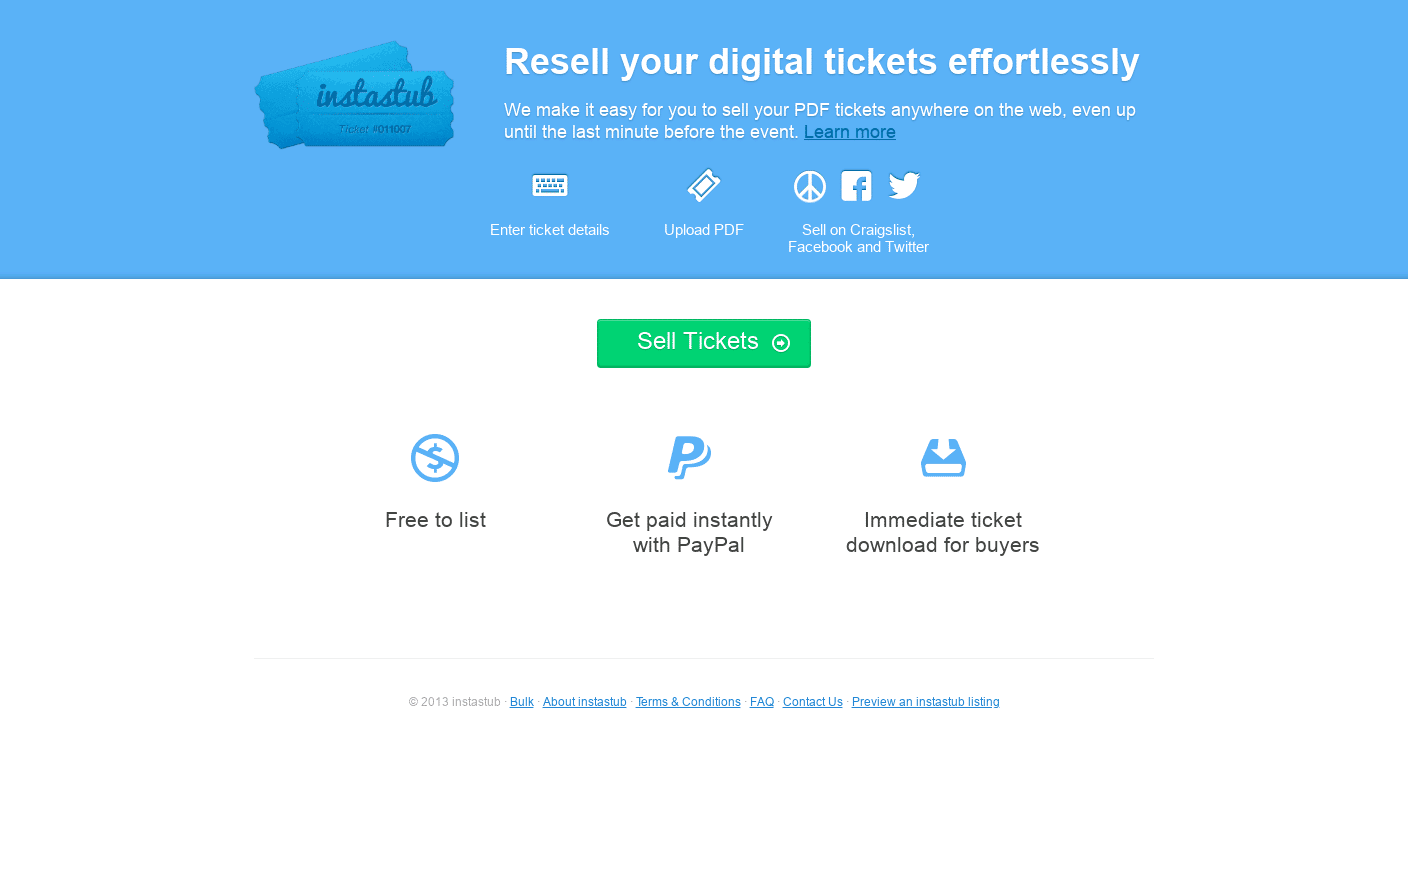 Sell Tickets with Ease